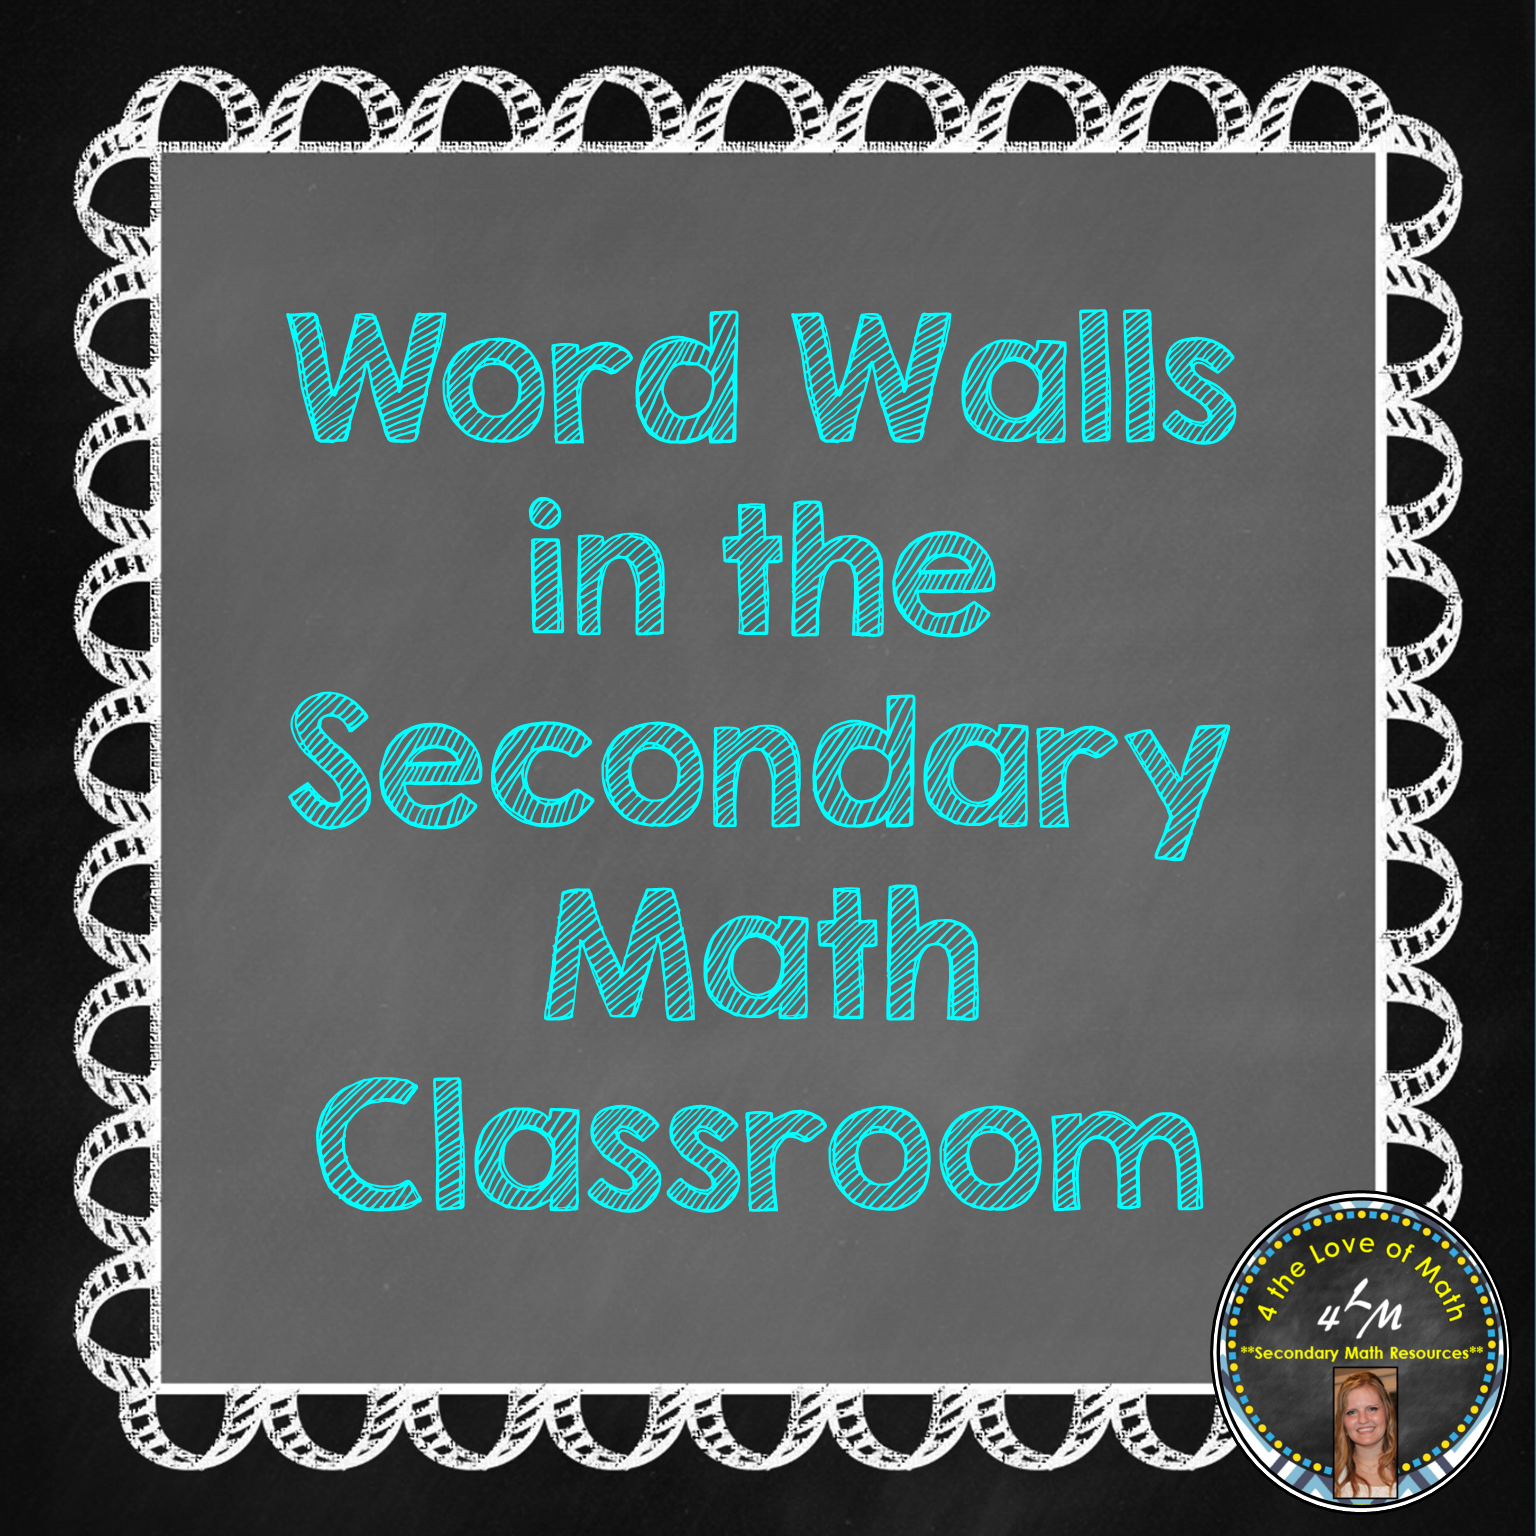 Blog Post With Tips On Using A Word Wall In Middle Or High